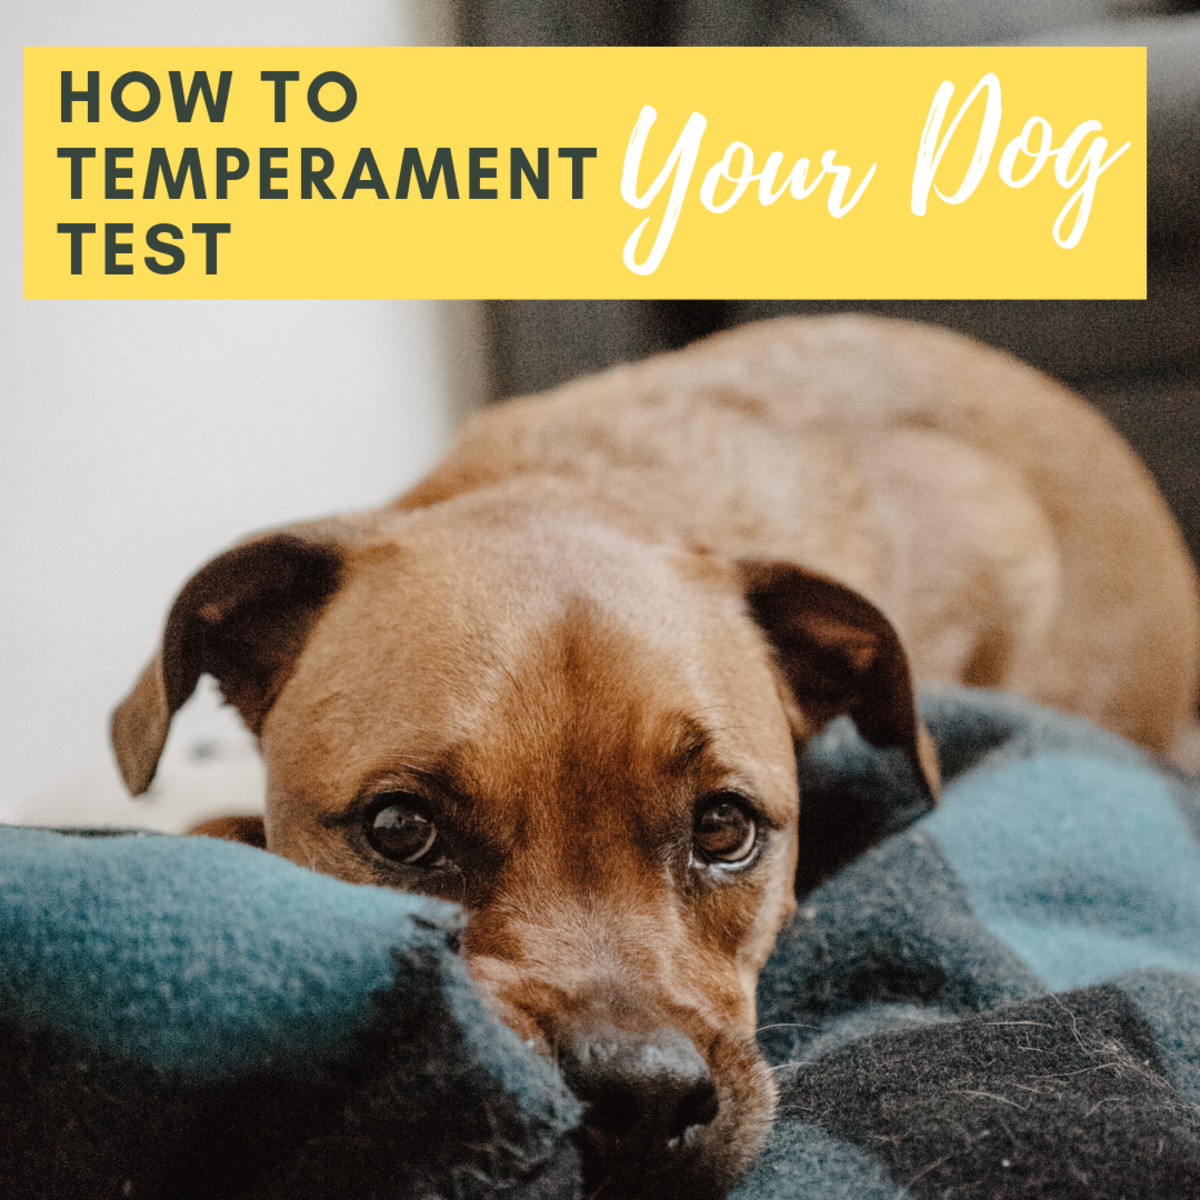 Temperament Testing in Dogs